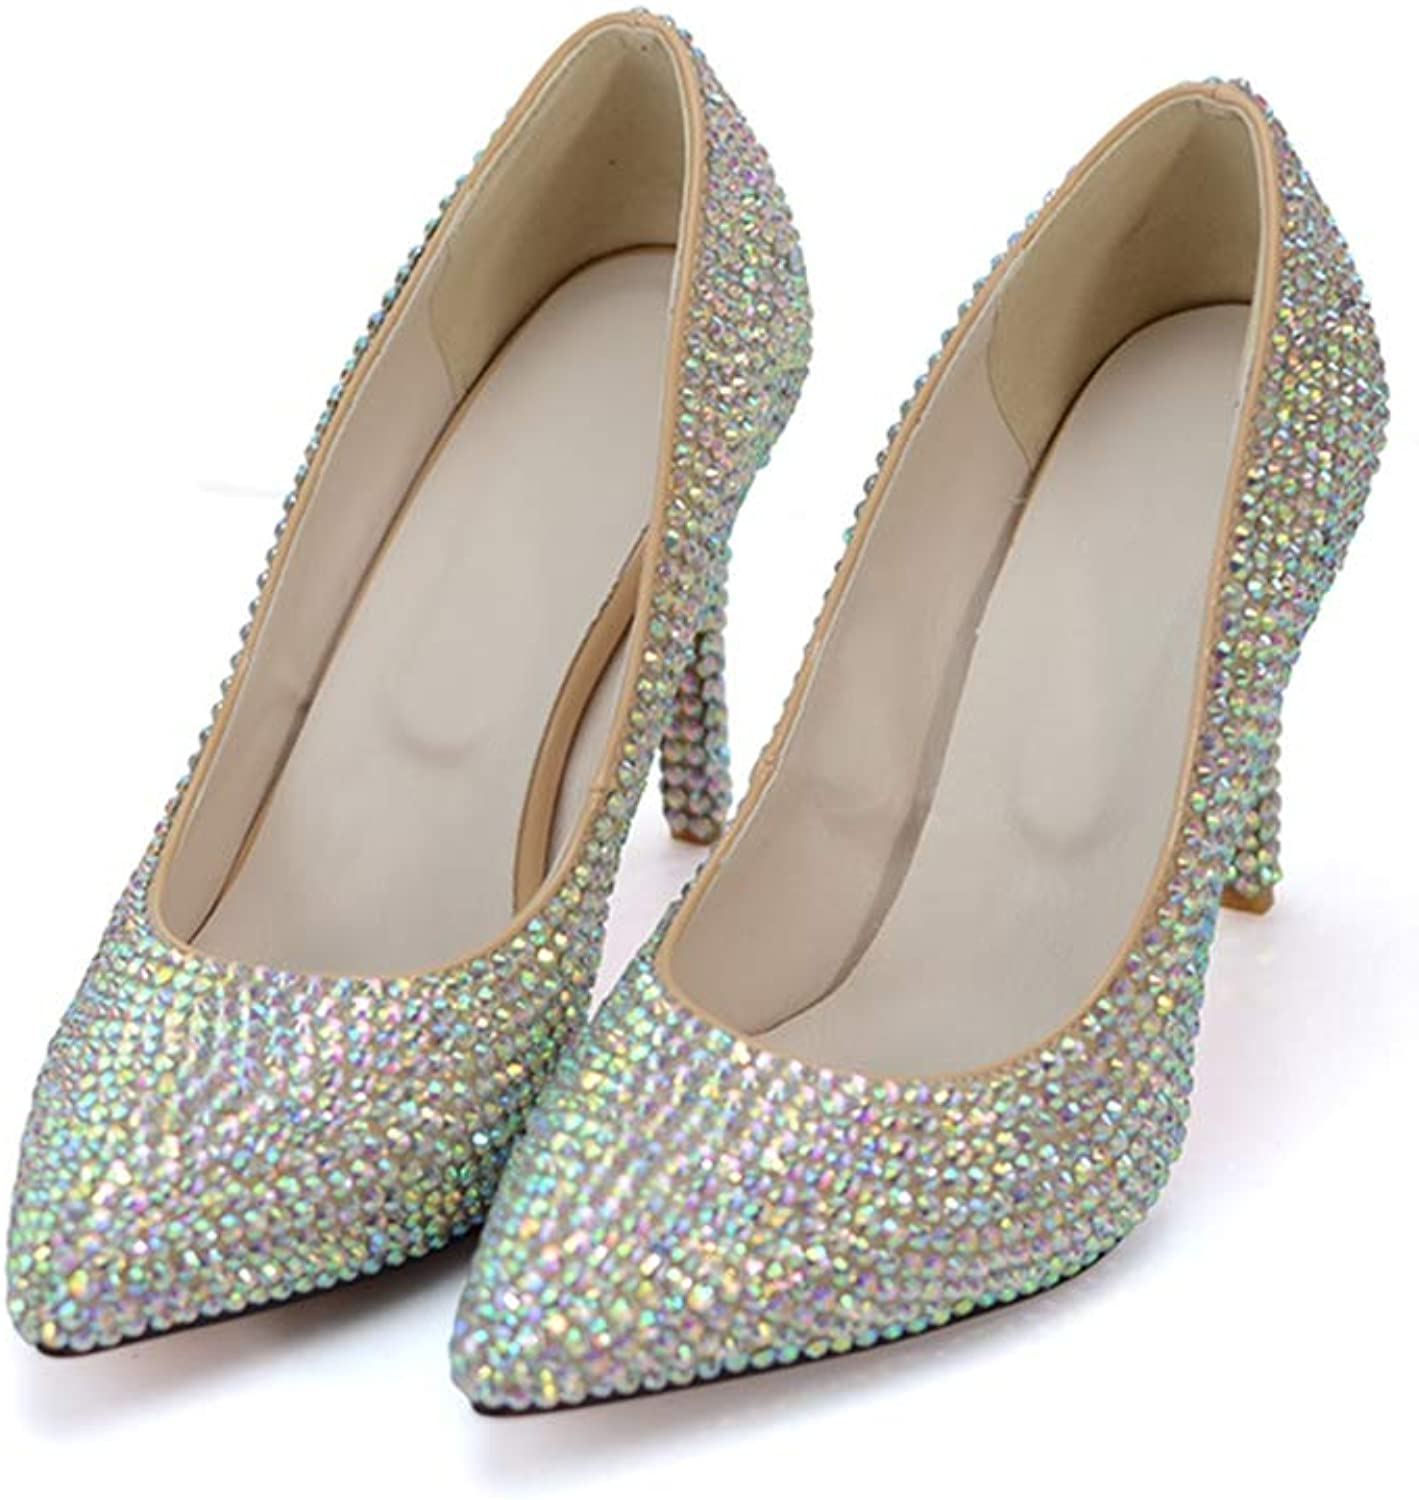 Wedding Bride shoes Silver AB color Bridal Dress shoes Pointed Toe Matric Graduate Farewell Ceremony Pumps